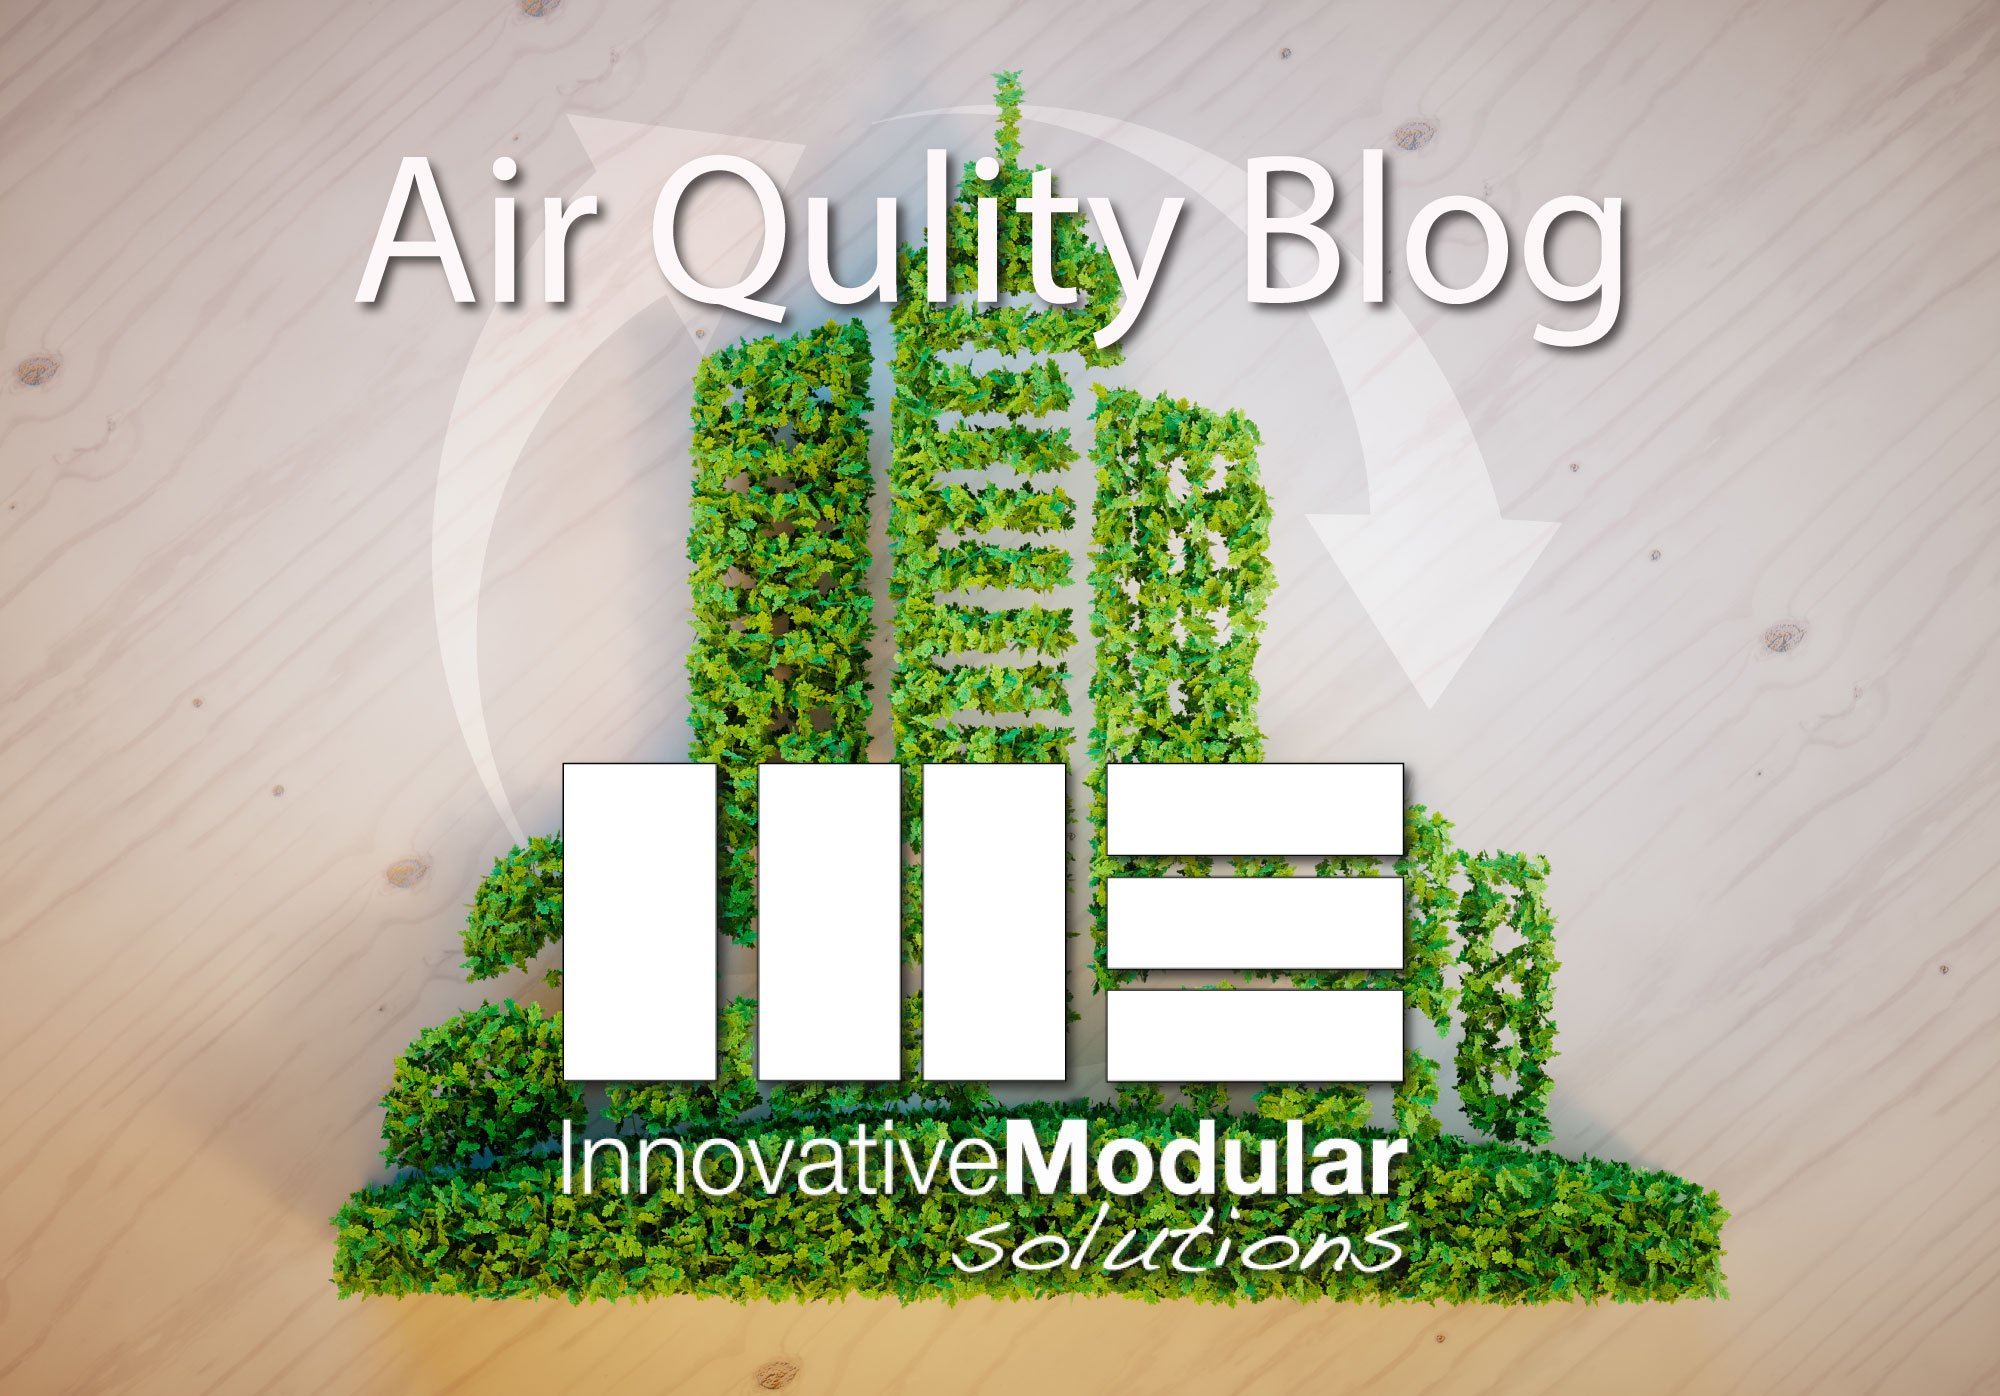 Modular Classroom Buildings and Air Quality